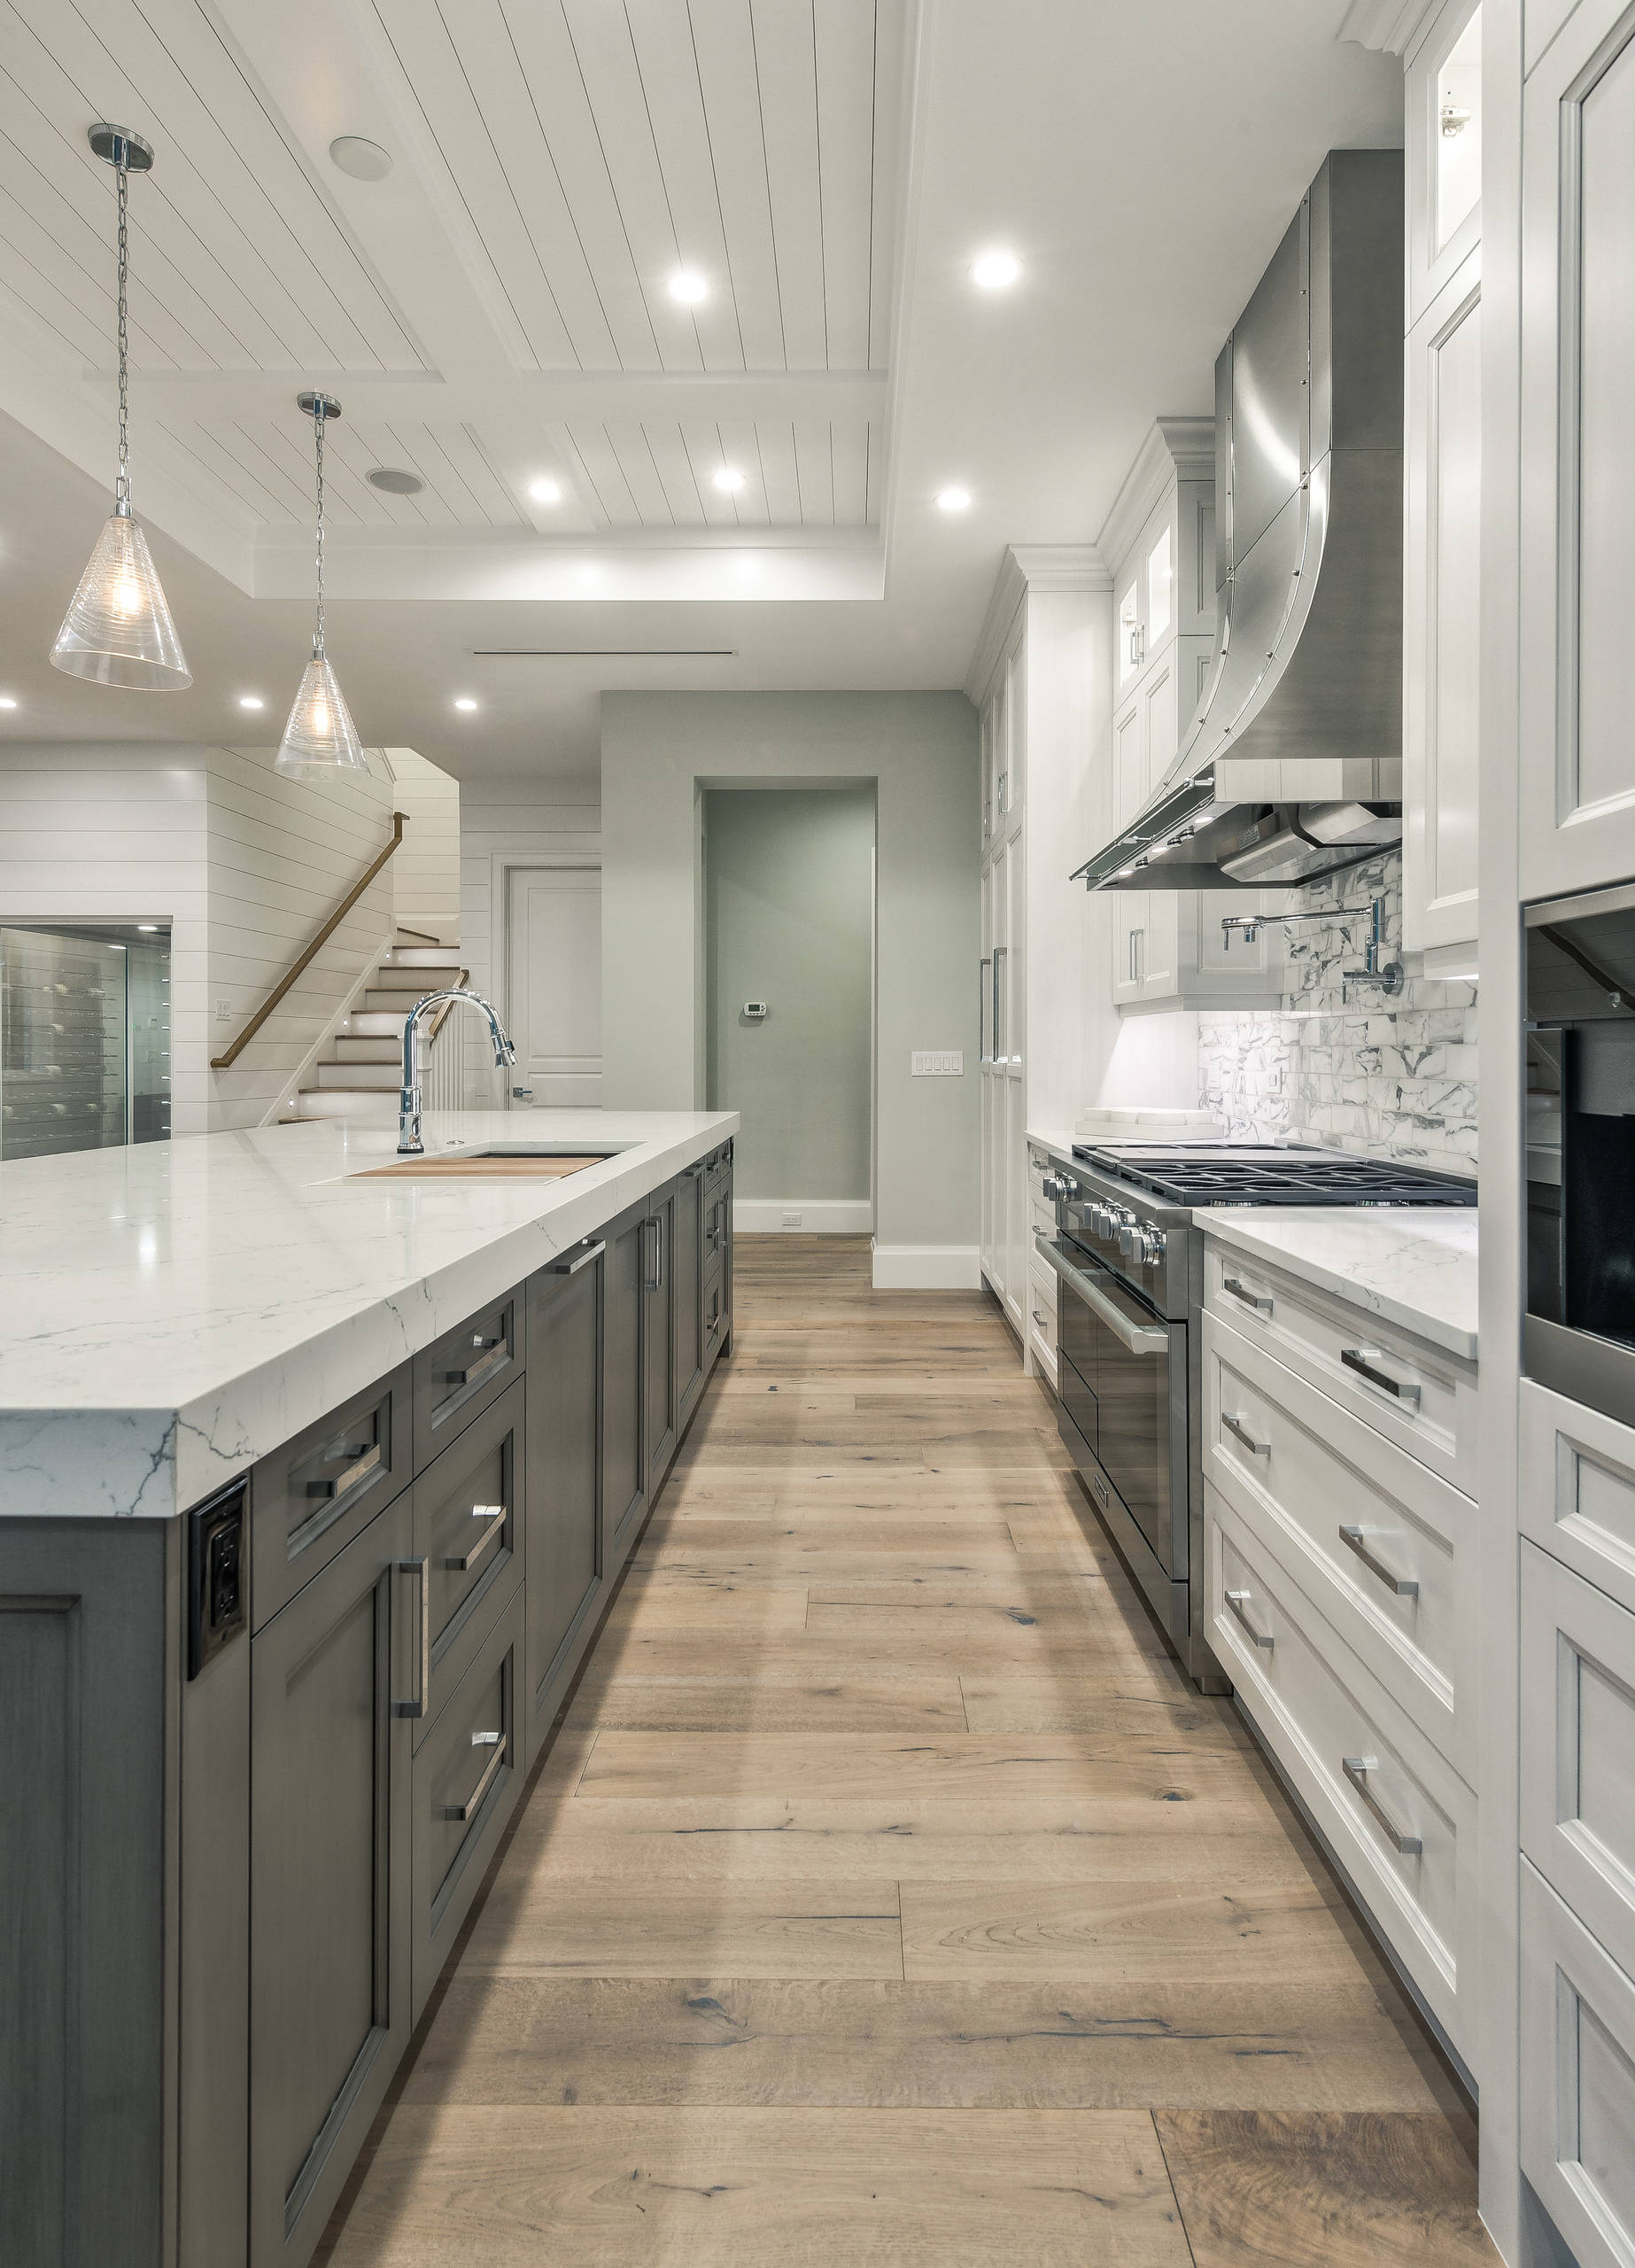 999 Beautiful Modern Kitchen Pictures Ideas September 2020 Houzz